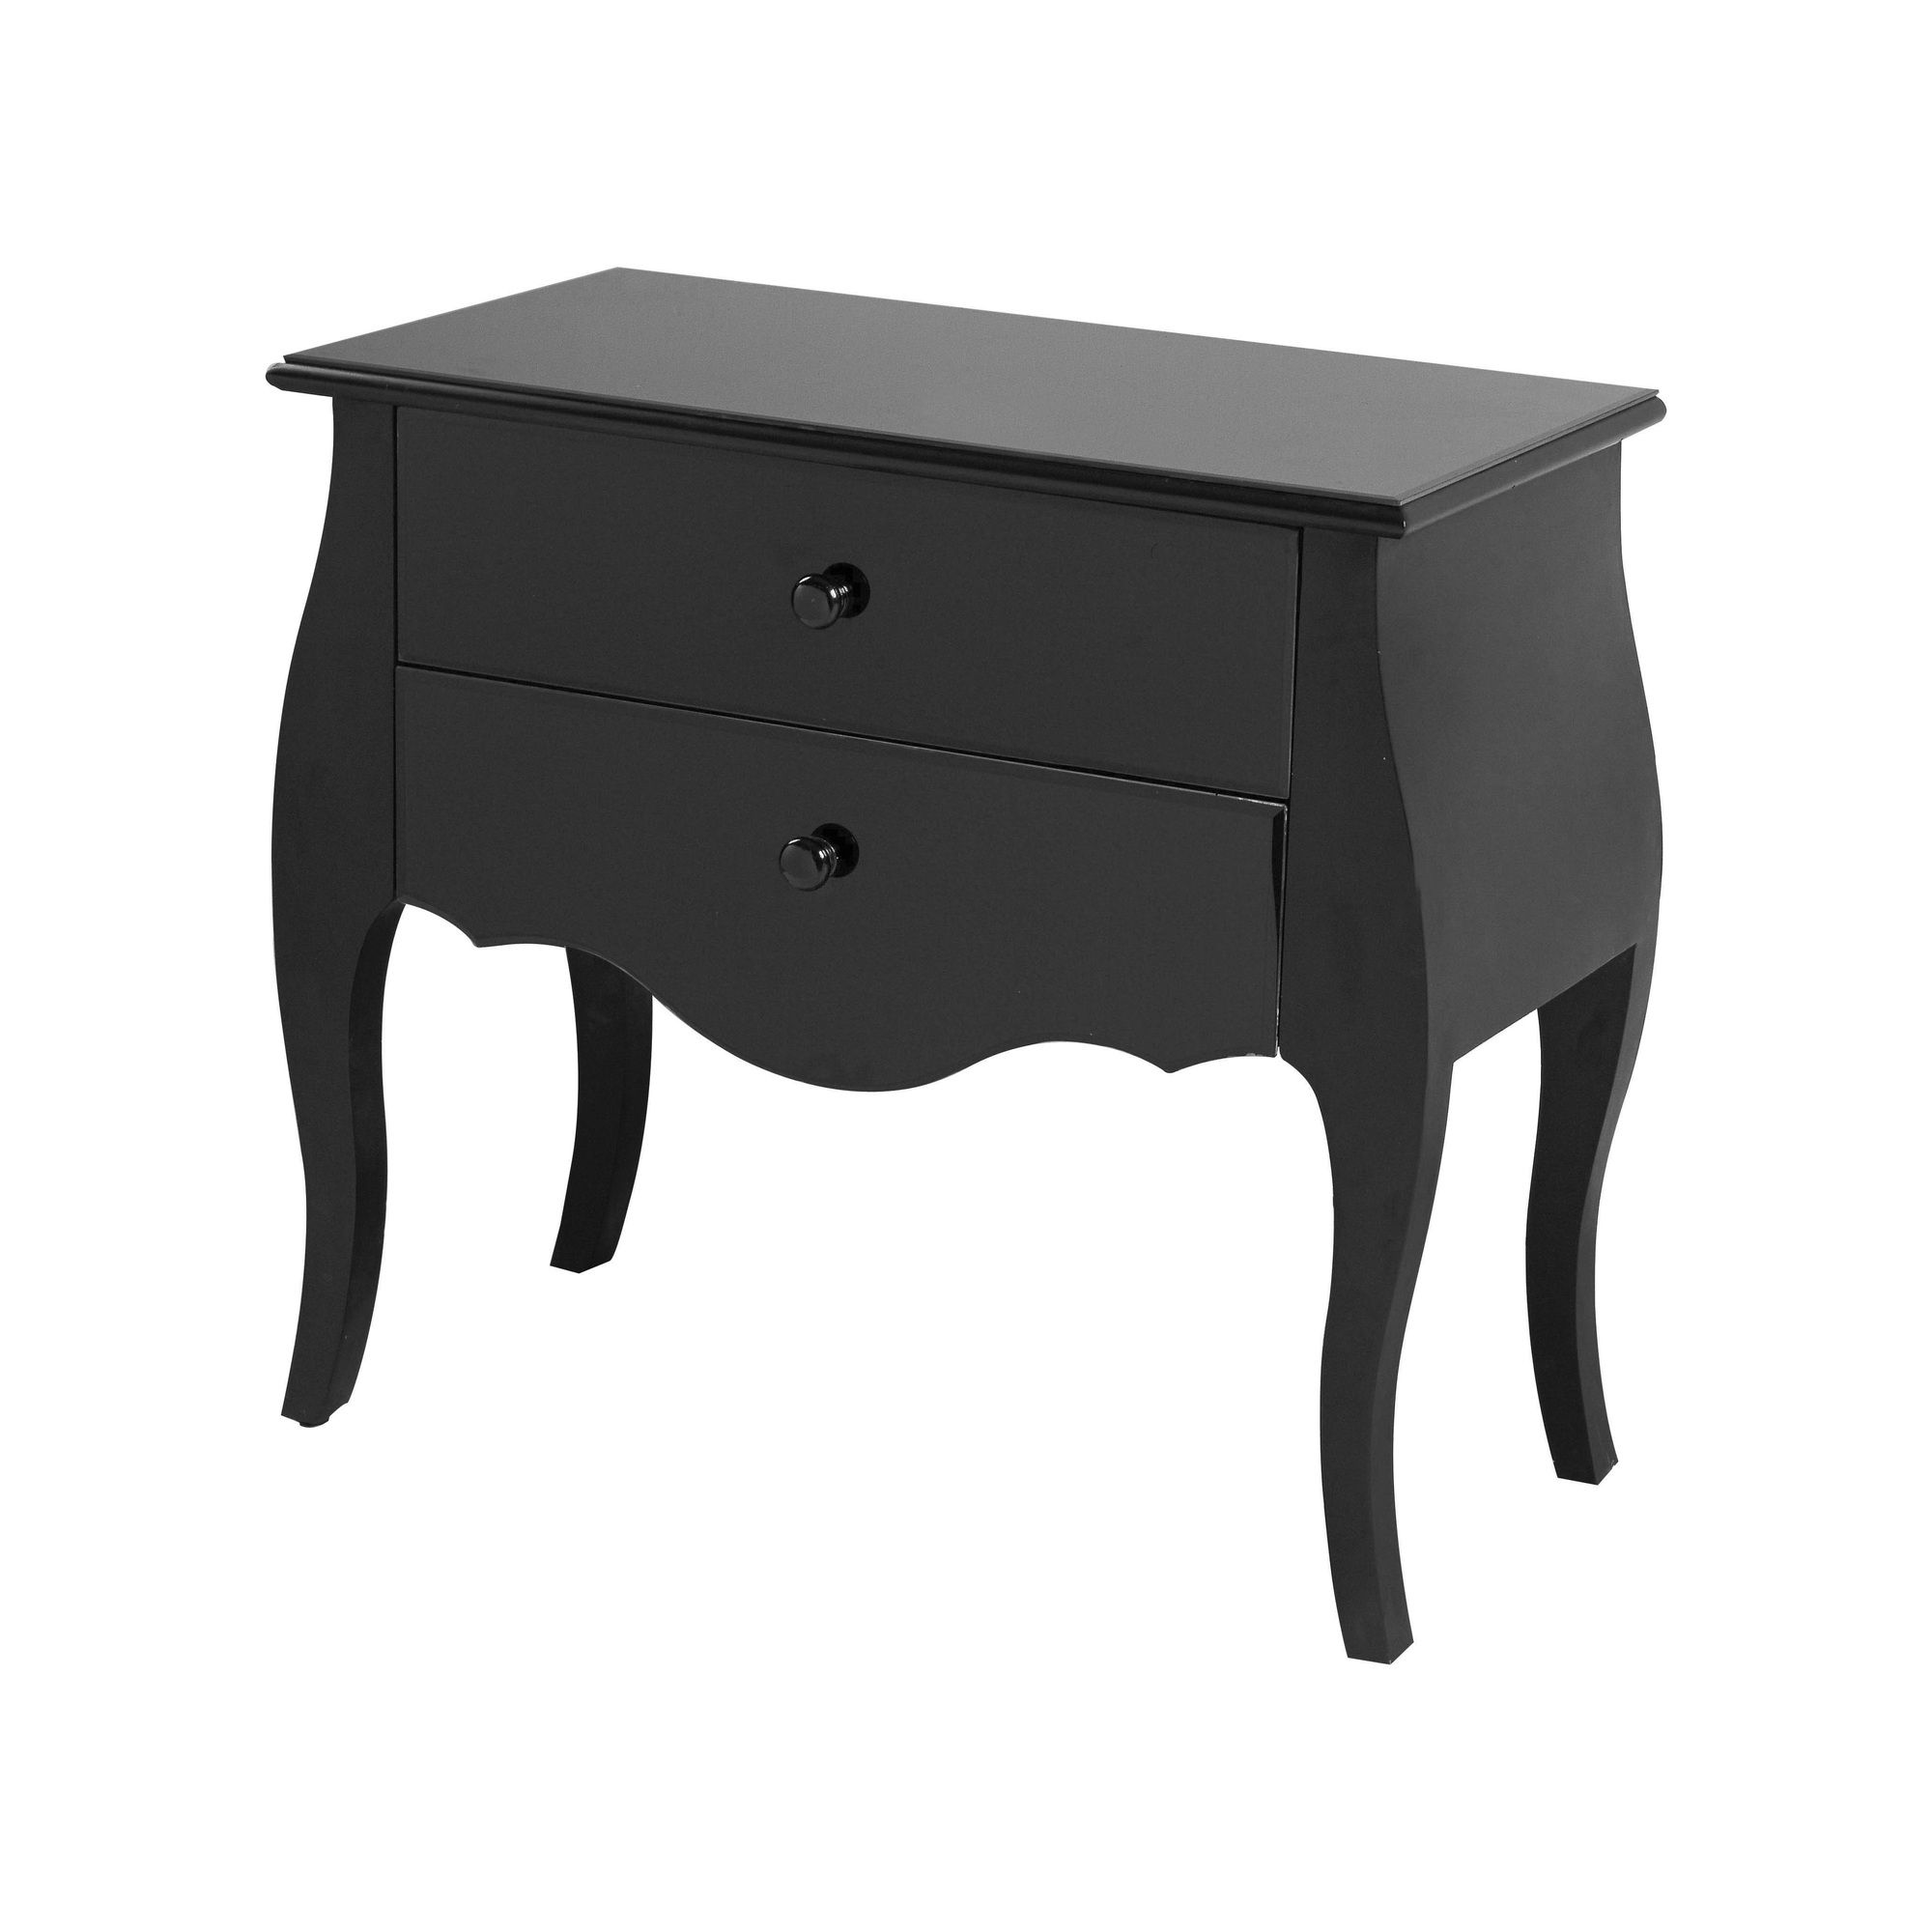 Premier Housewares Dresser Table with Two Drawer at Tesco Direct